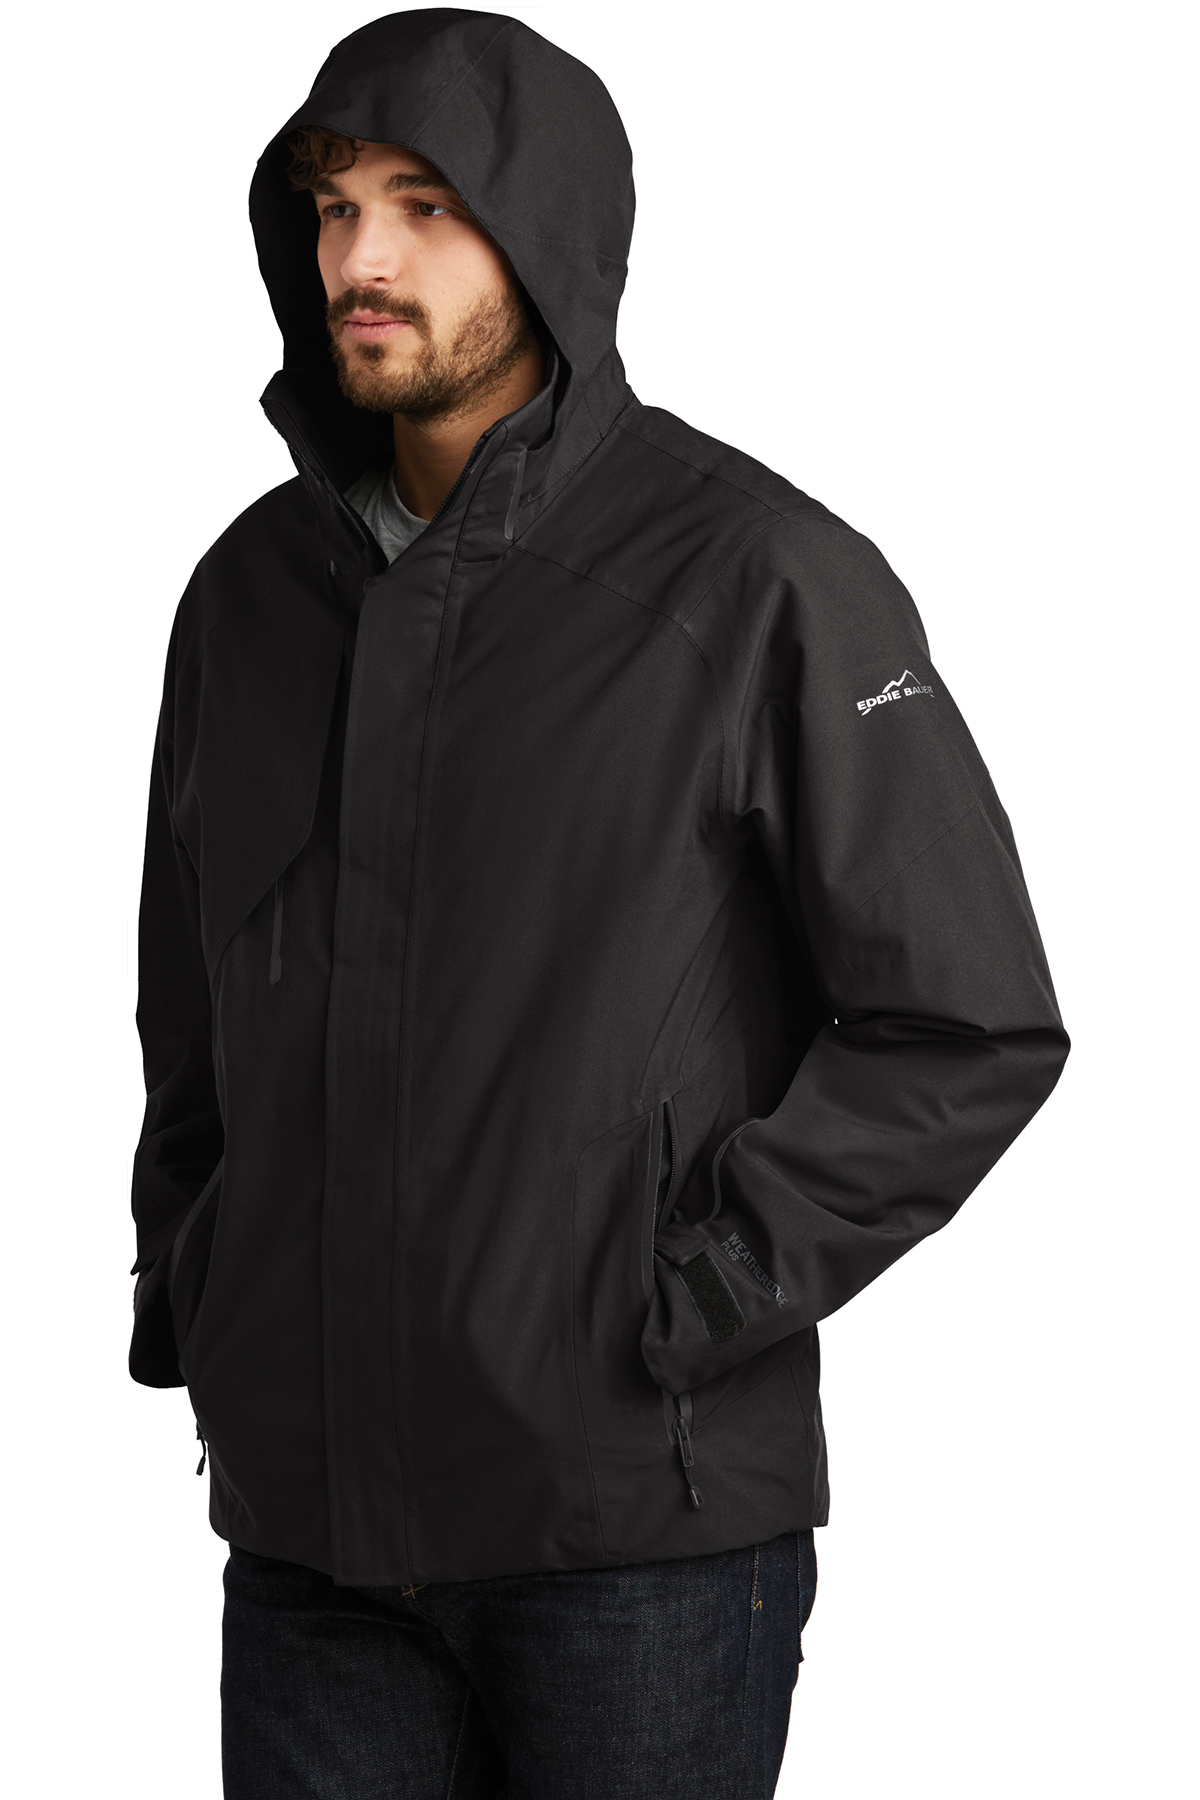 ecf6a86748f Eddie Bauer® WeatherEdge® Plus Insulated Jacket